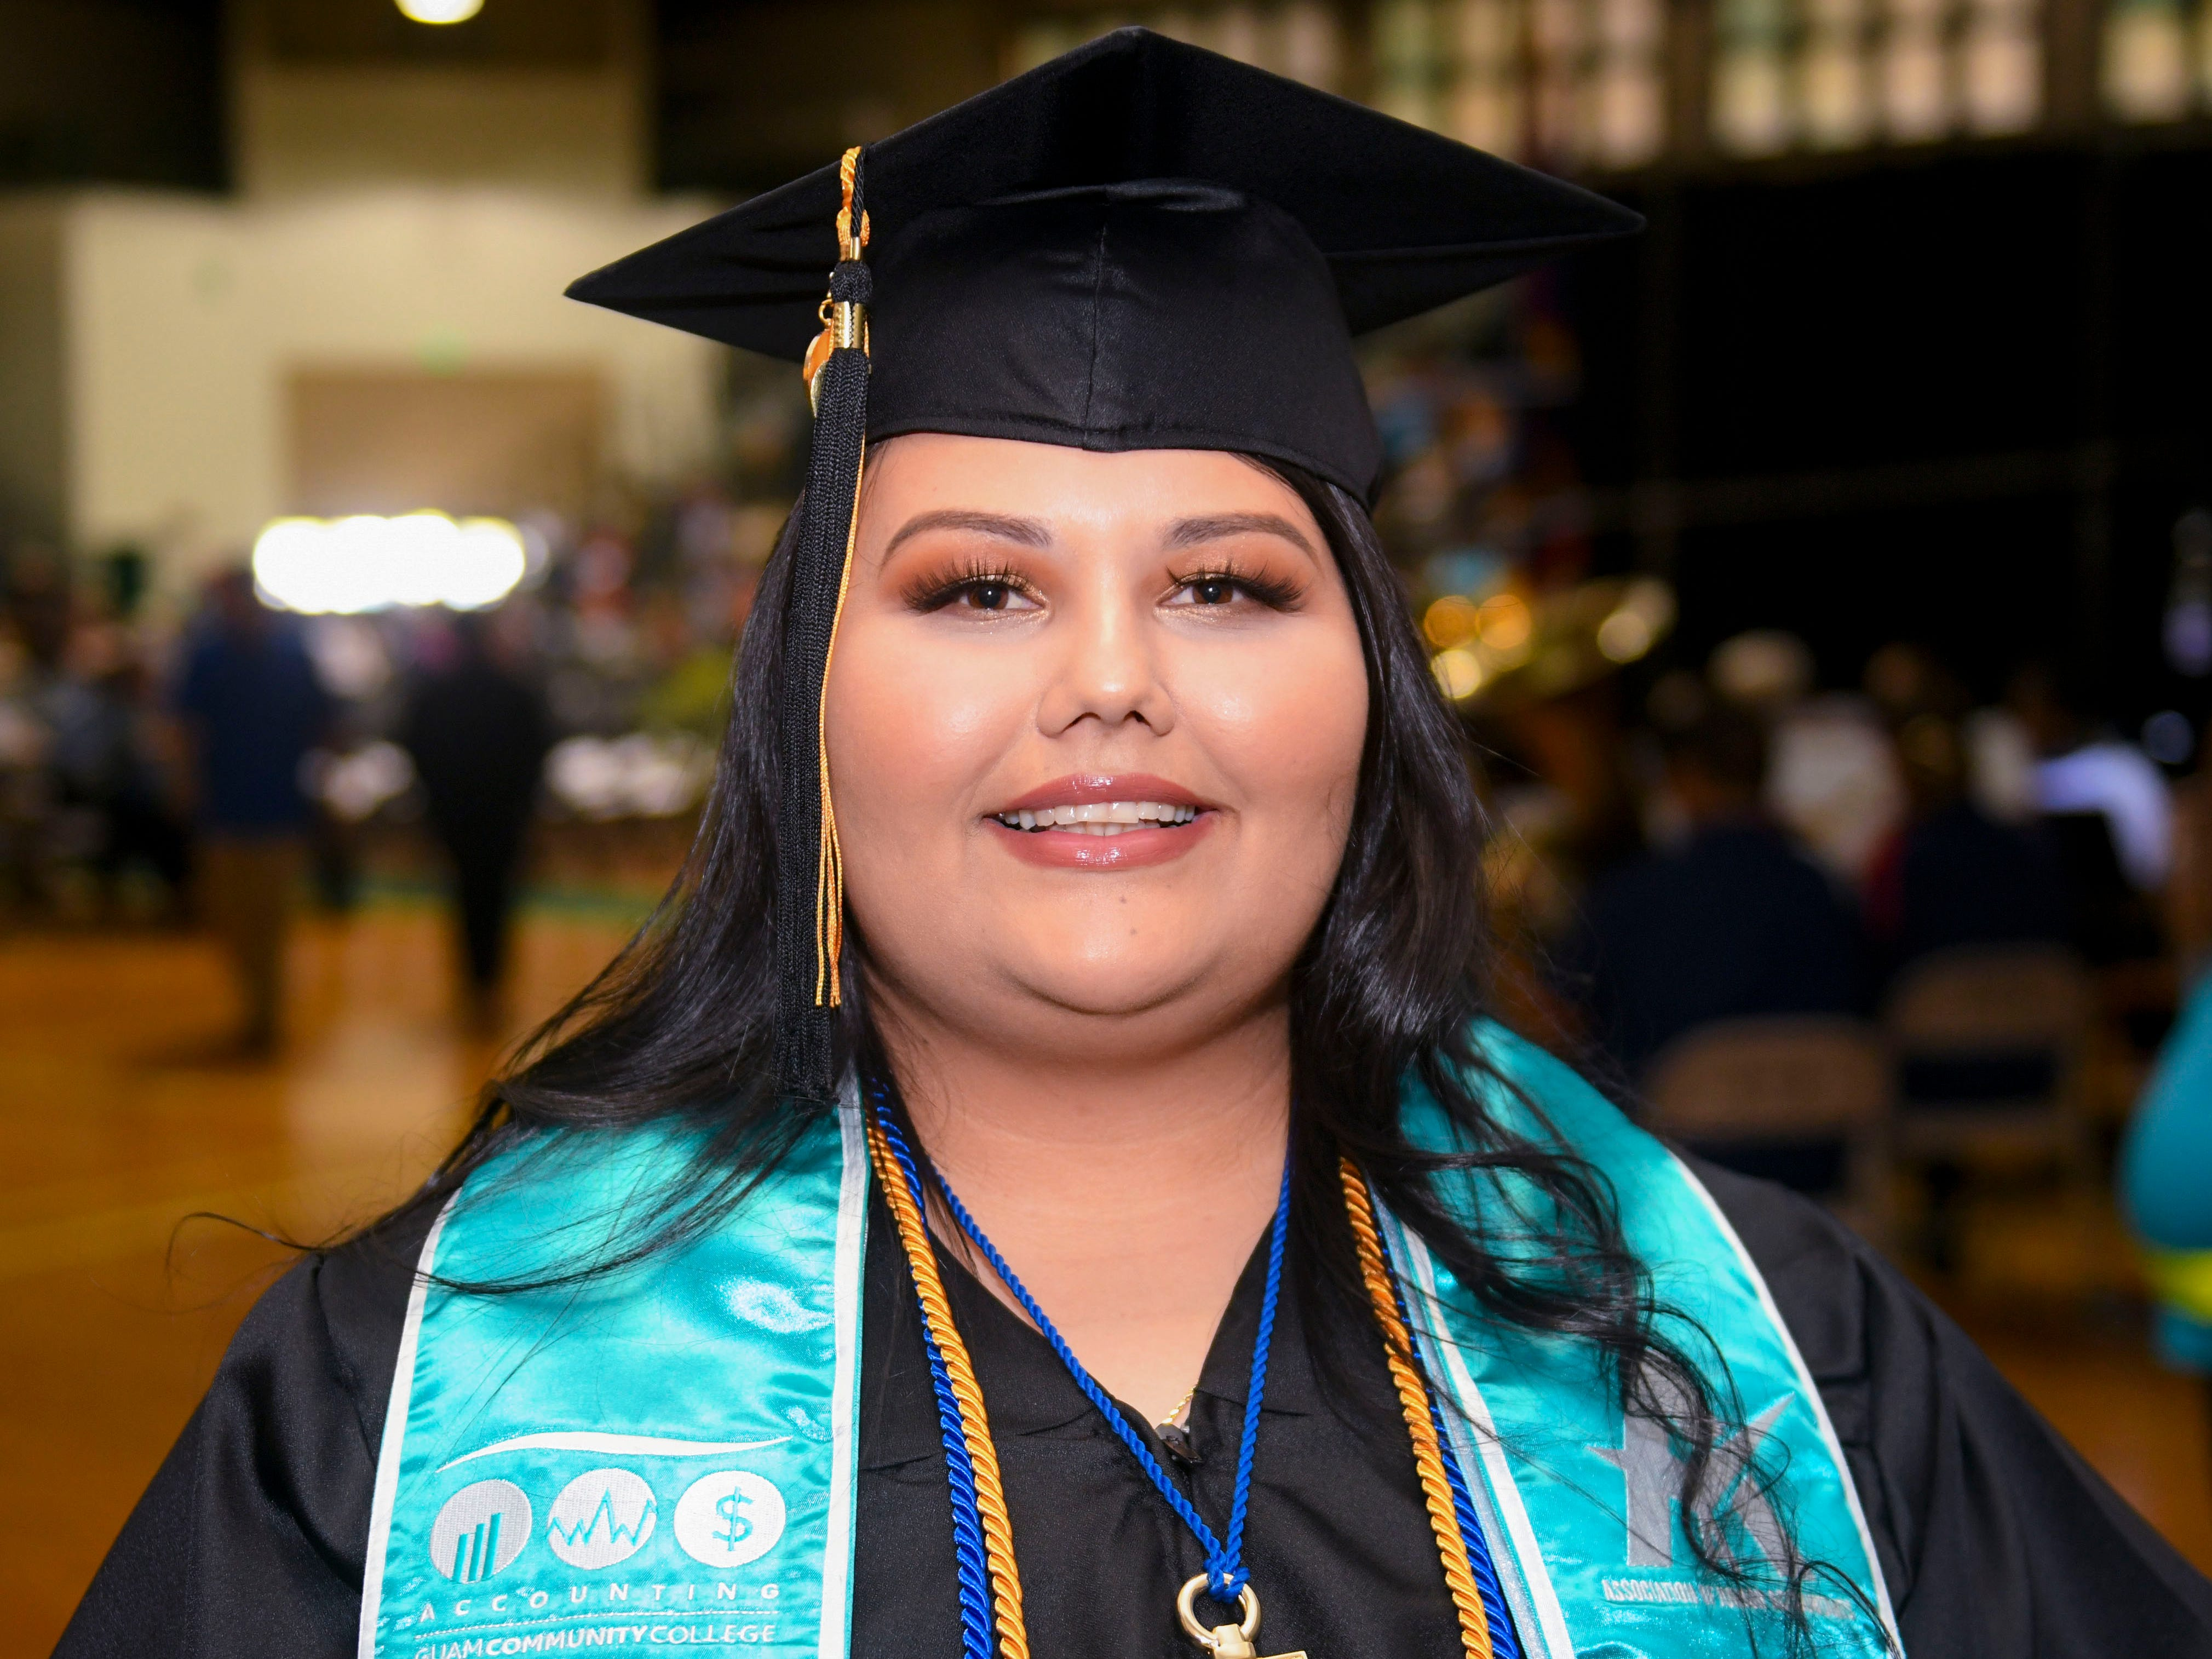 Jaime Lynn Freitas was recognized as Guam Community College's most distinguished graduate during the institution's commencement exercise at the University of Guam in Mangilao on Friday, May 10, 2019. The college conferred a total of 435 degrees, certificates, and/or diplomas to 357 graduate celebrated at the ceremony, attended by hundreds of family members, friends and other well wishers.